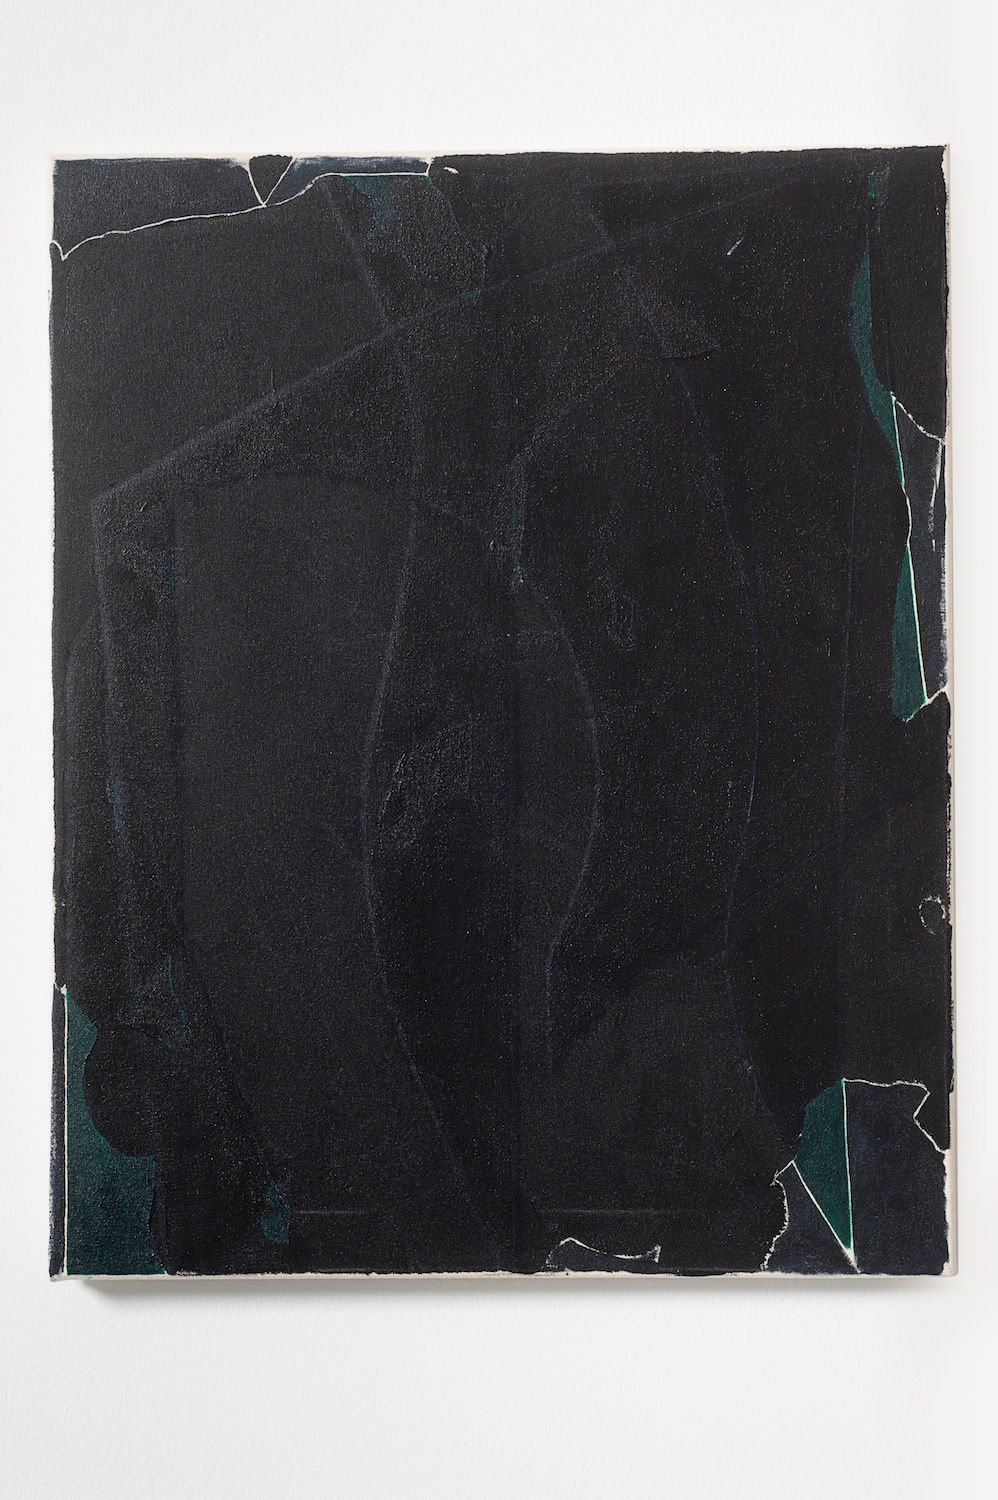 Zak Prekop  Black Relief  2011 Oil and paper on canvas 25h x 20w in ZP154